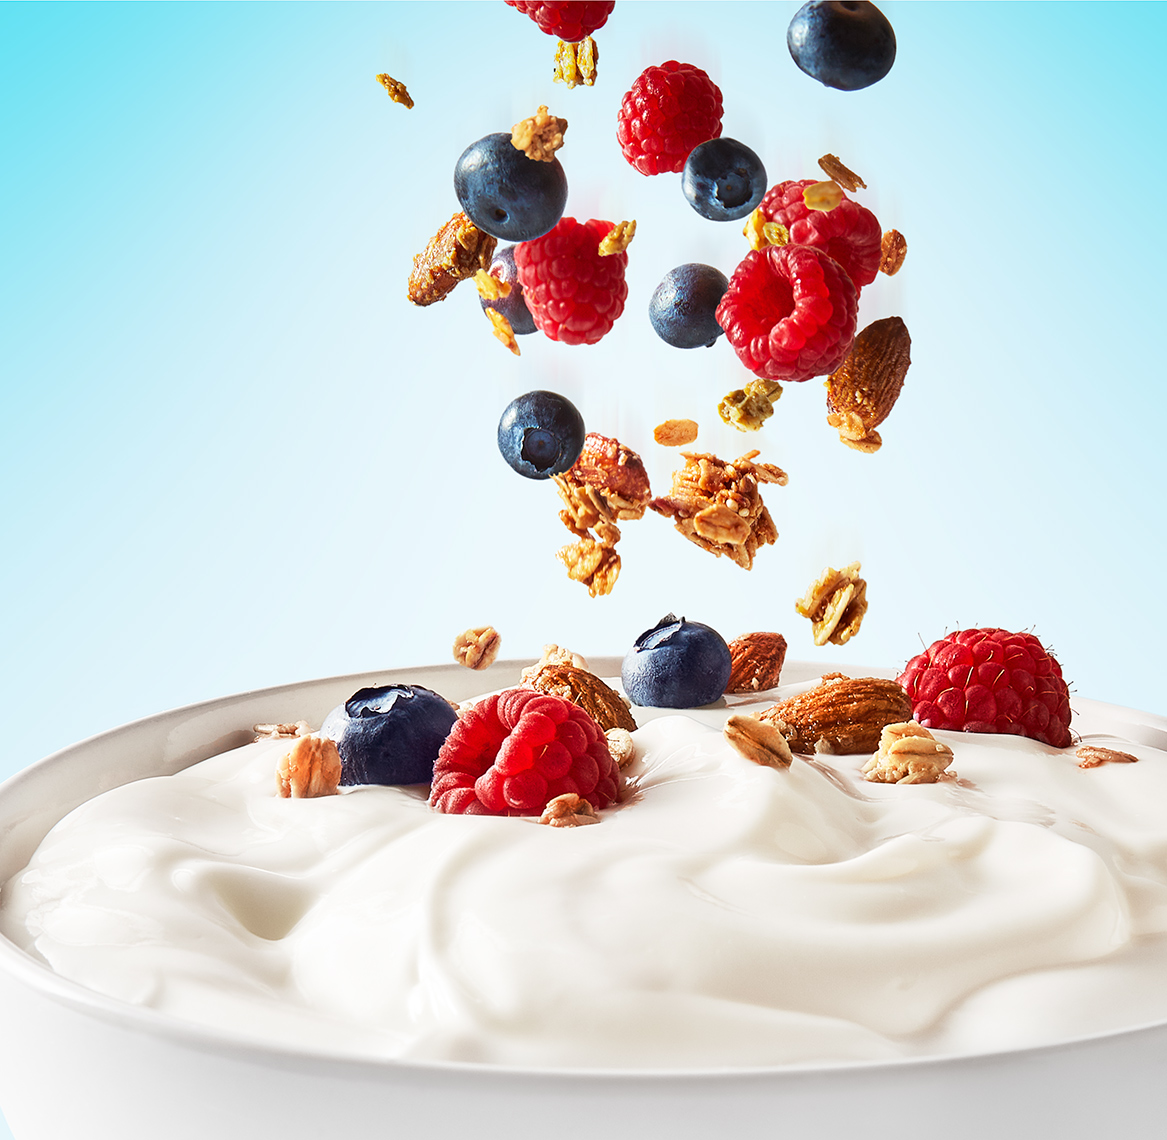 Yoghurt_1_2019_0009_Bowl_Falling-Berries_FINAL